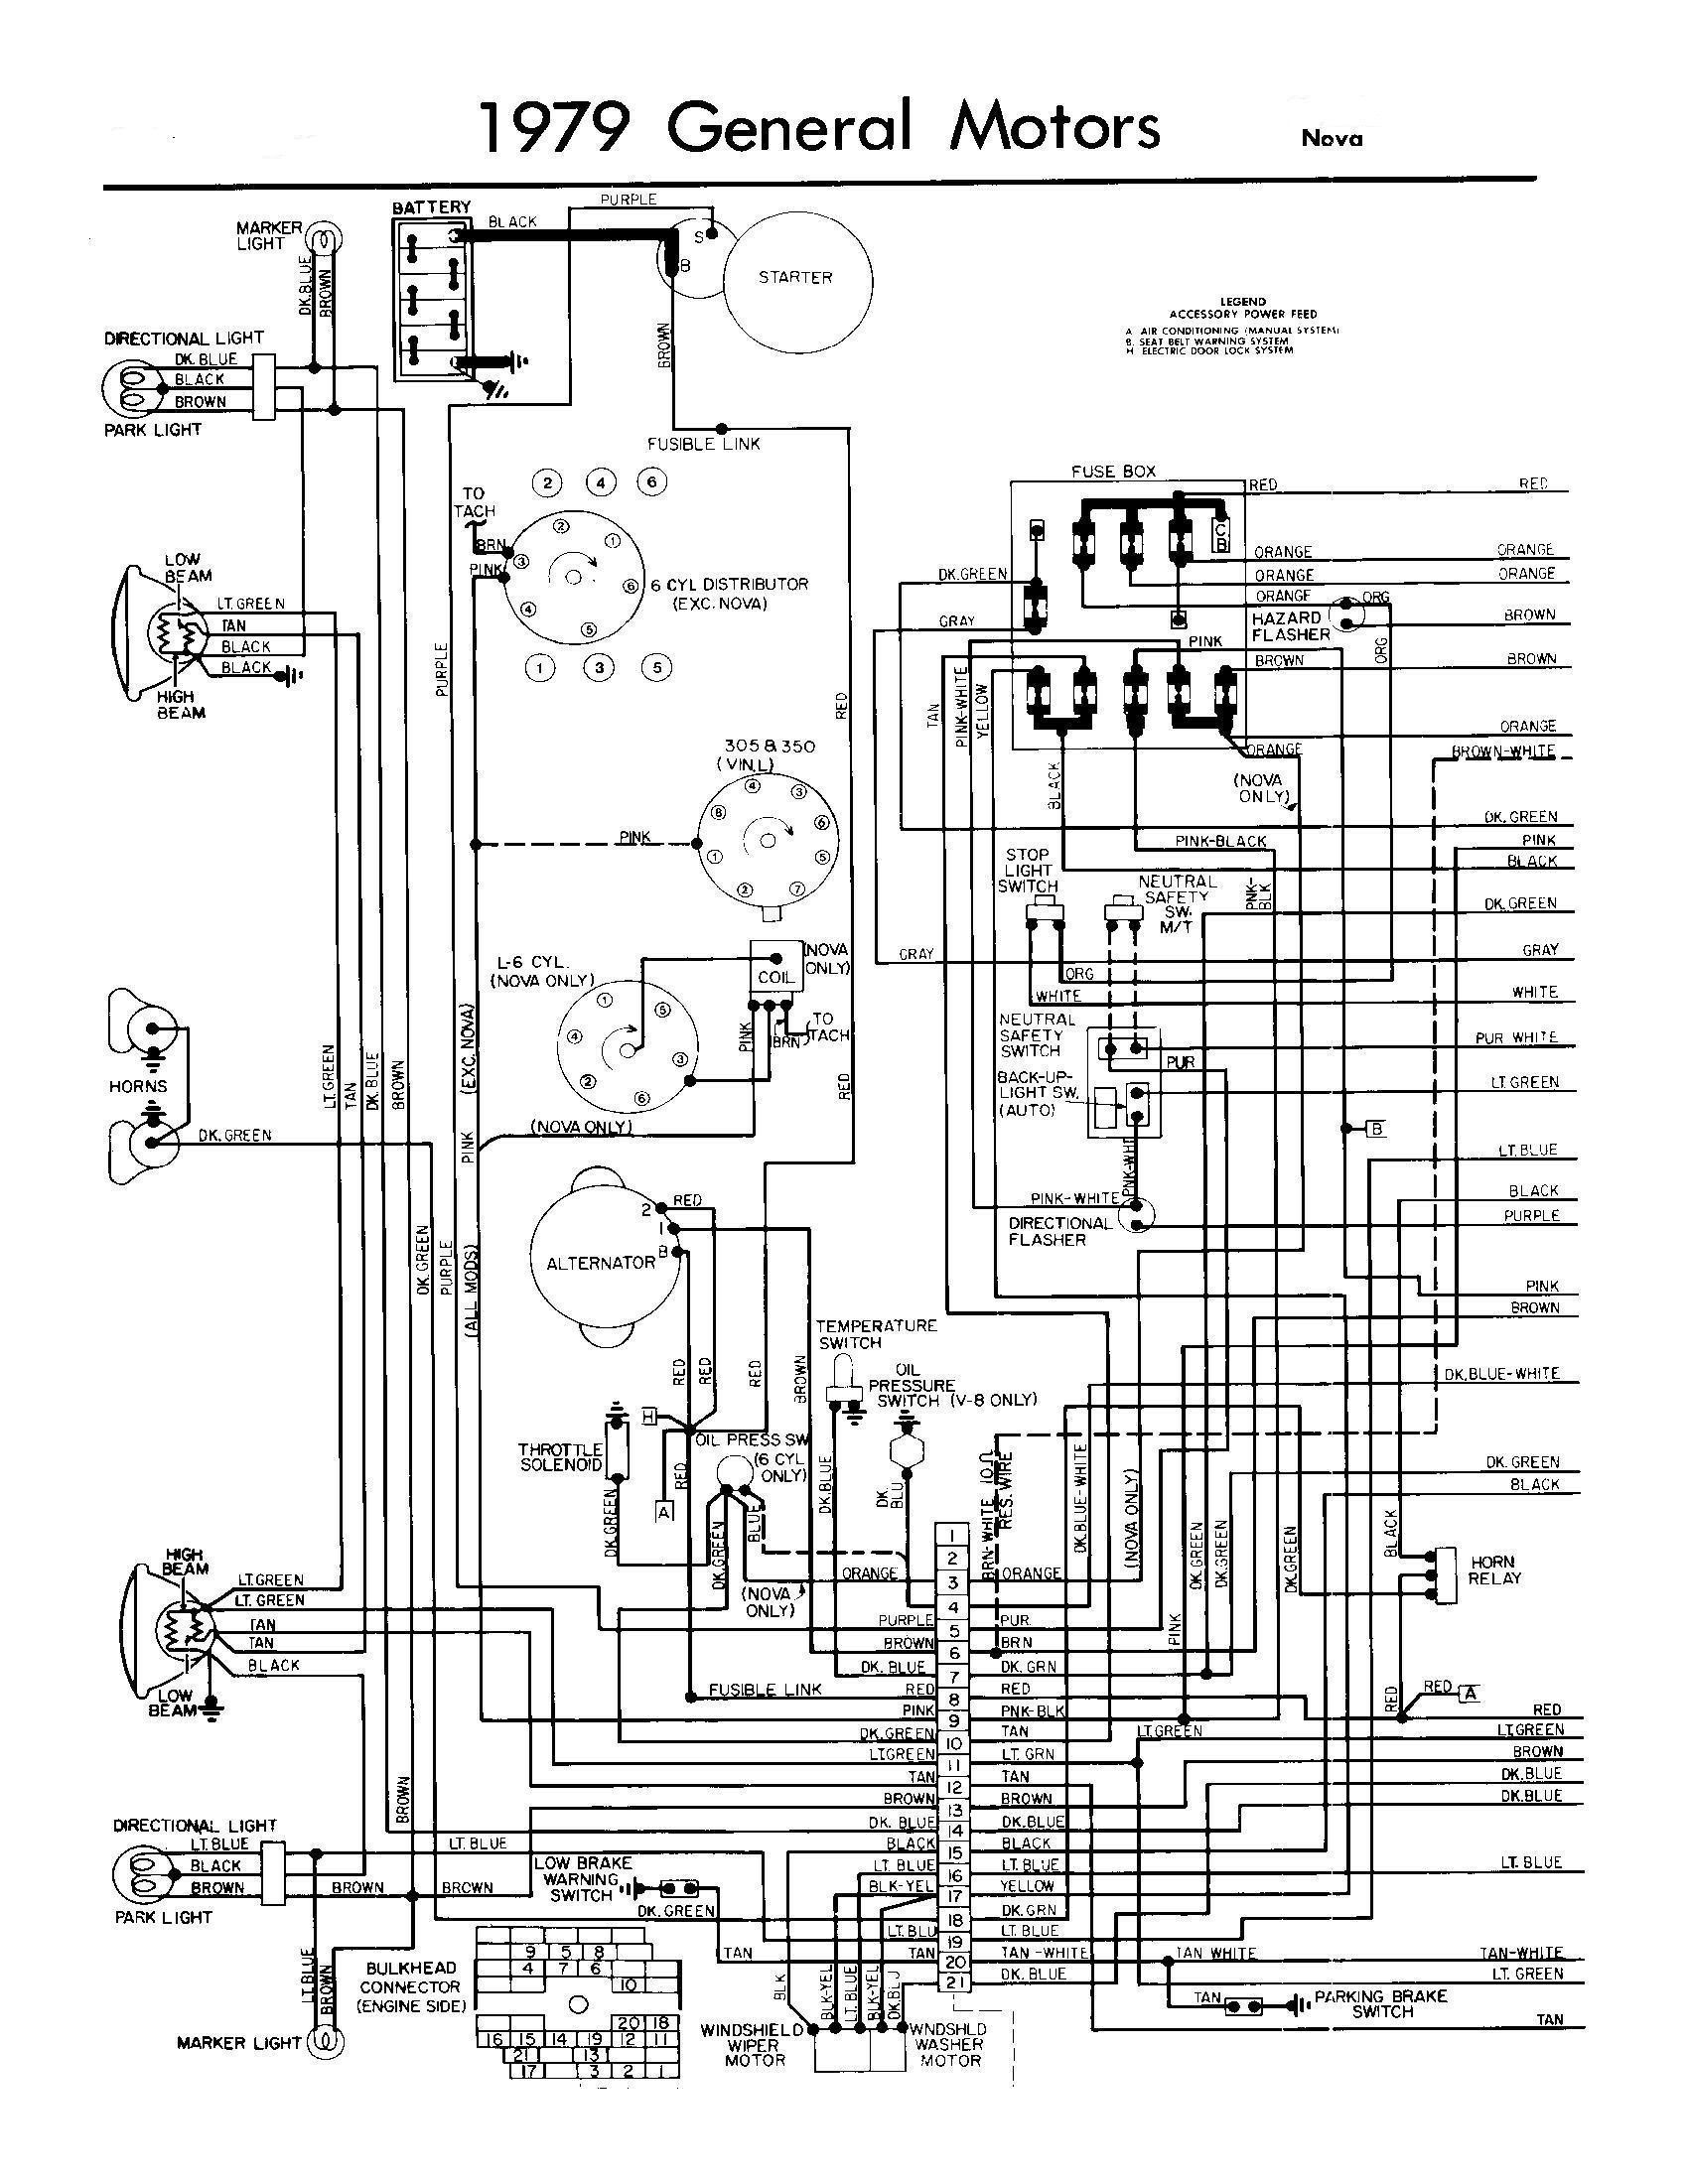 1976 Jeep Wiring Diagram - Bookmark About Wiring Diagram •  Jeep Cj Technical Wiring Diagram on 1998 jeep grand cherokee wiring diagram, 1977 jeep cj7 parts, 1980 jeep cj7 wiring diagram, 1977 jeep cj7 owner's manual, 1981 jeep cj7 wiring diagram, 1977 jeep cj7 frame, 1986 jeep cj7 wiring diagram, 1984 jeep cj7 wiring diagram, 1983 jeep cj7 wiring diagram, 1977 jeep cj7 seats, 1982 jeep cj7 wiring diagram, 1976 jeep cj7 wiring diagram, 1977 jeep cj7 brochure, 1977 jeep cj7 air conditioning, jeep ignition switch wiring diagram, 1967 jeep cj5 wiring diagram, 1971 jeep cj5 wiring diagram, 1979 jeep cj7 wiring diagram, cj7 wiring harness diagram, 1985 jeep cj7 wiring diagram,